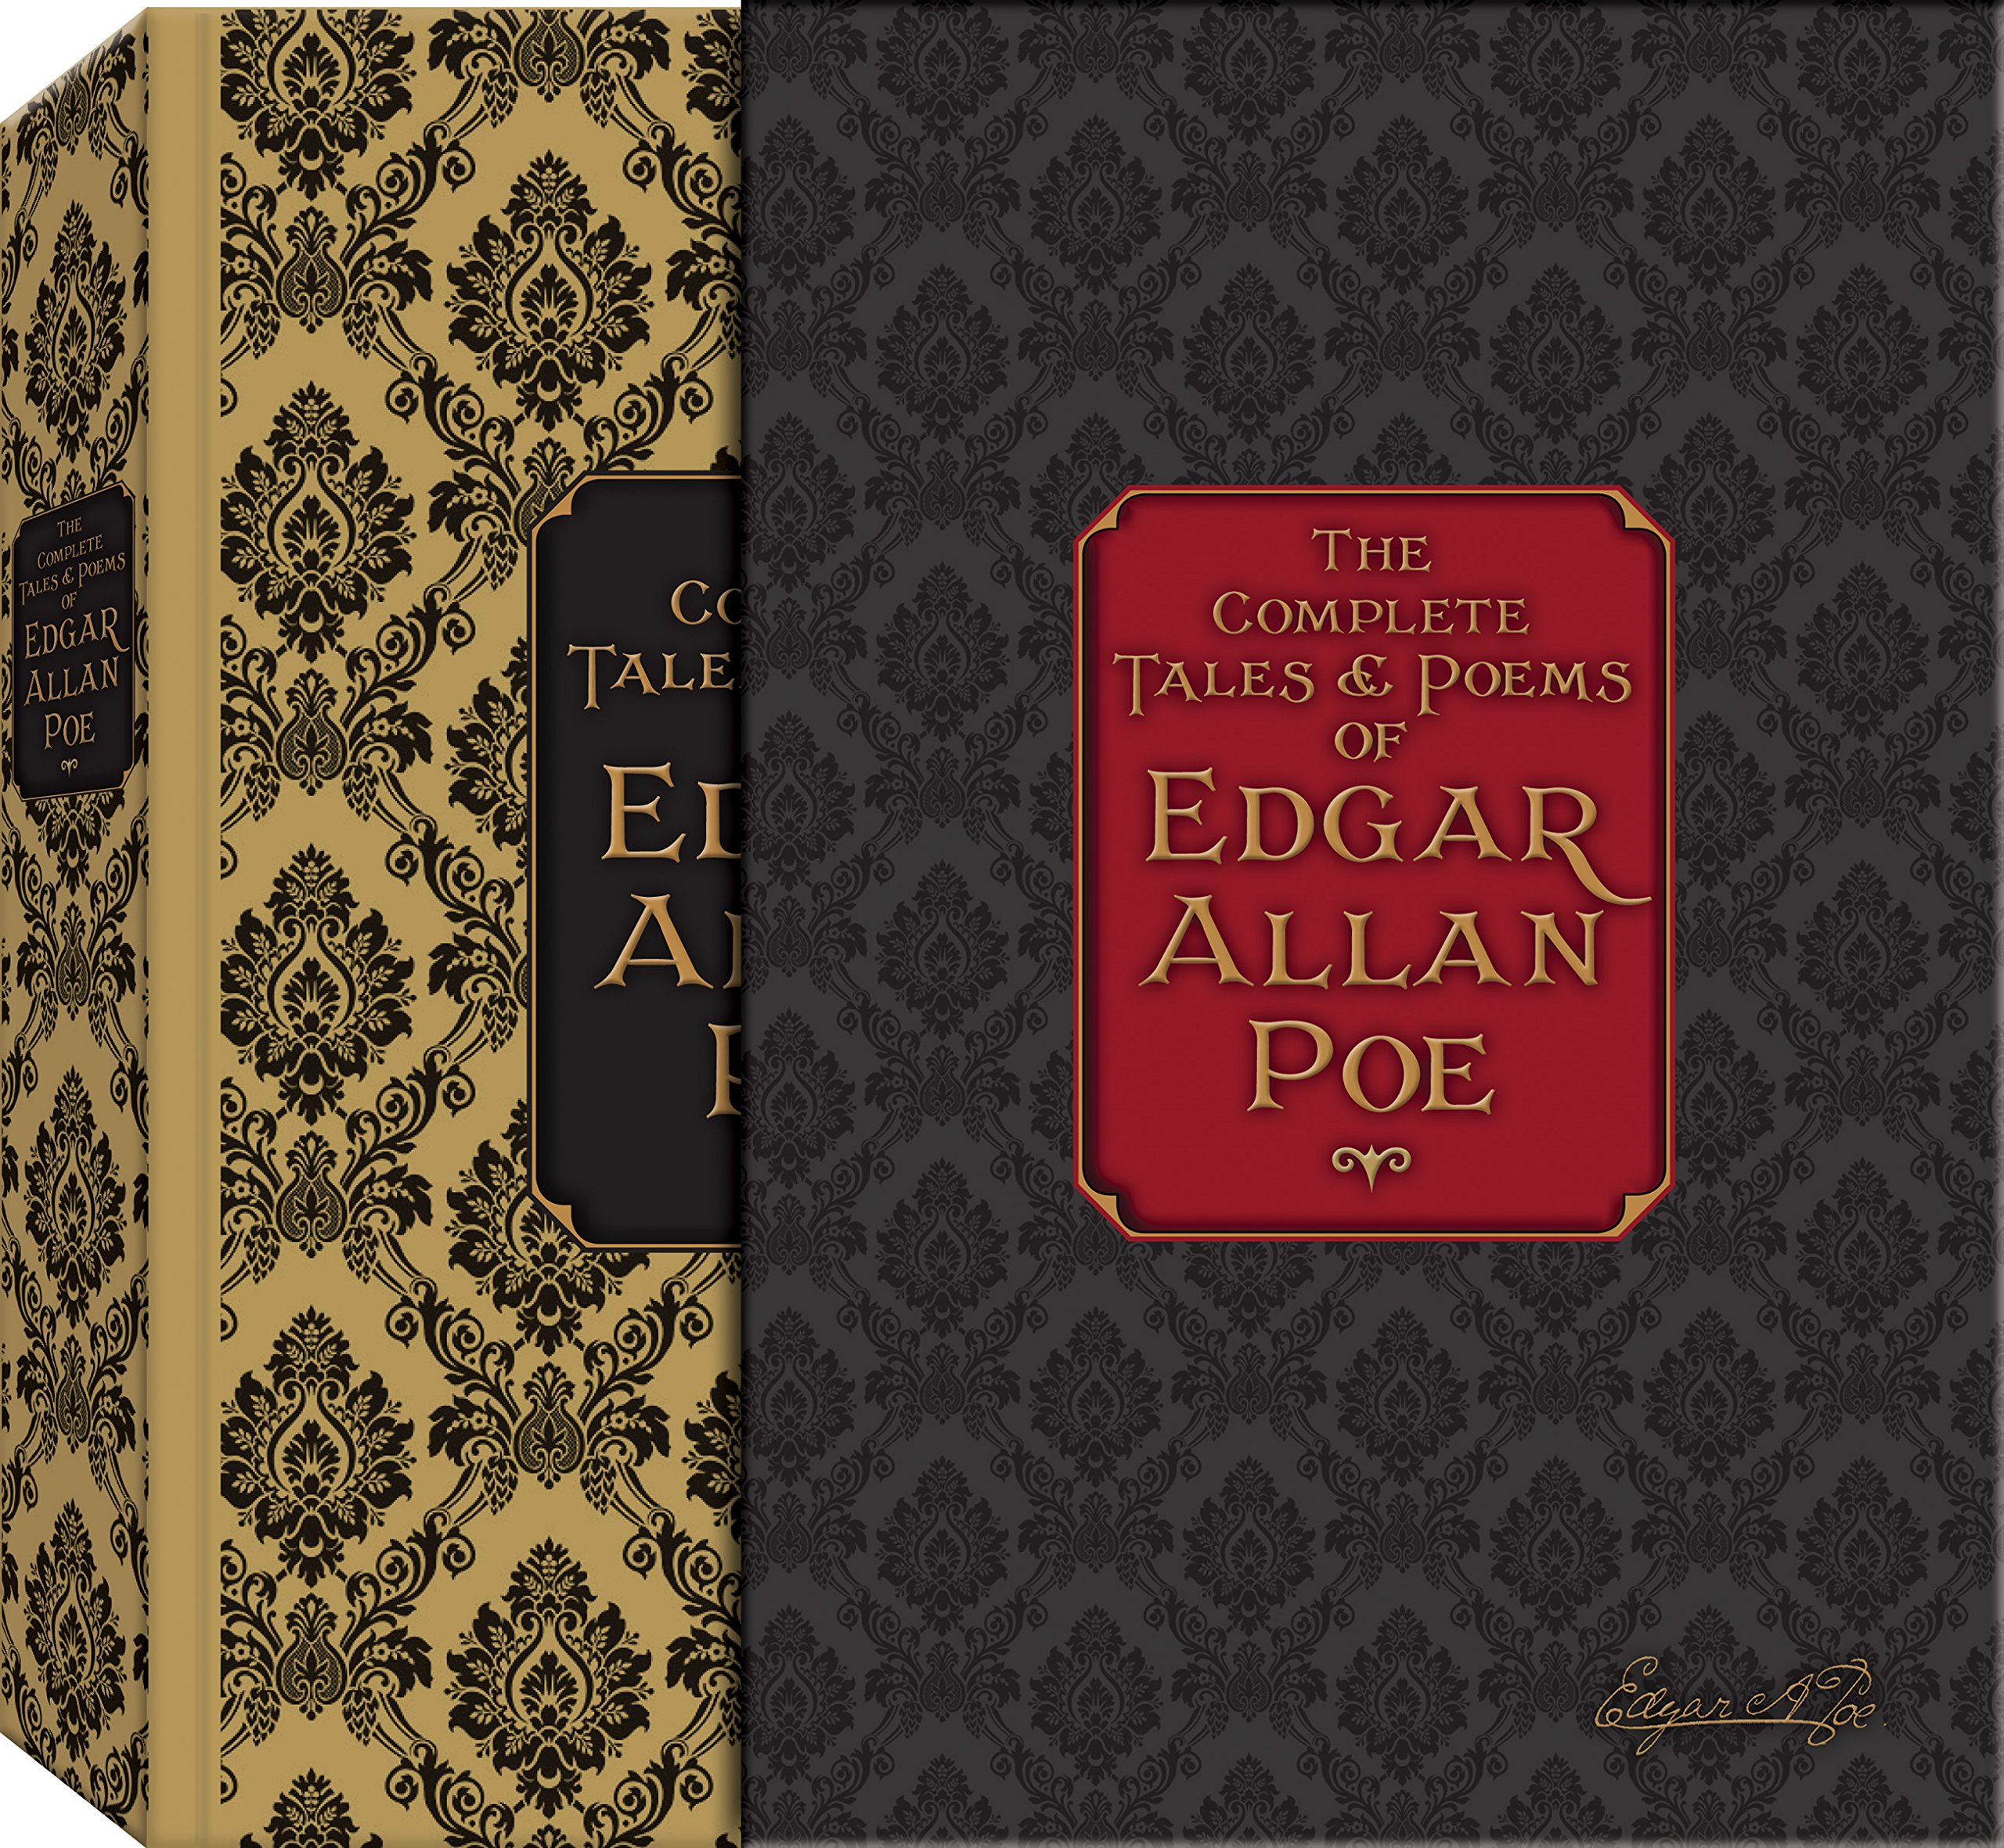 The Complete Tales & Poems of Edgar Allan Poe: Amazon.co.uk: Edgar Allan Poe:  9781937994433: Books